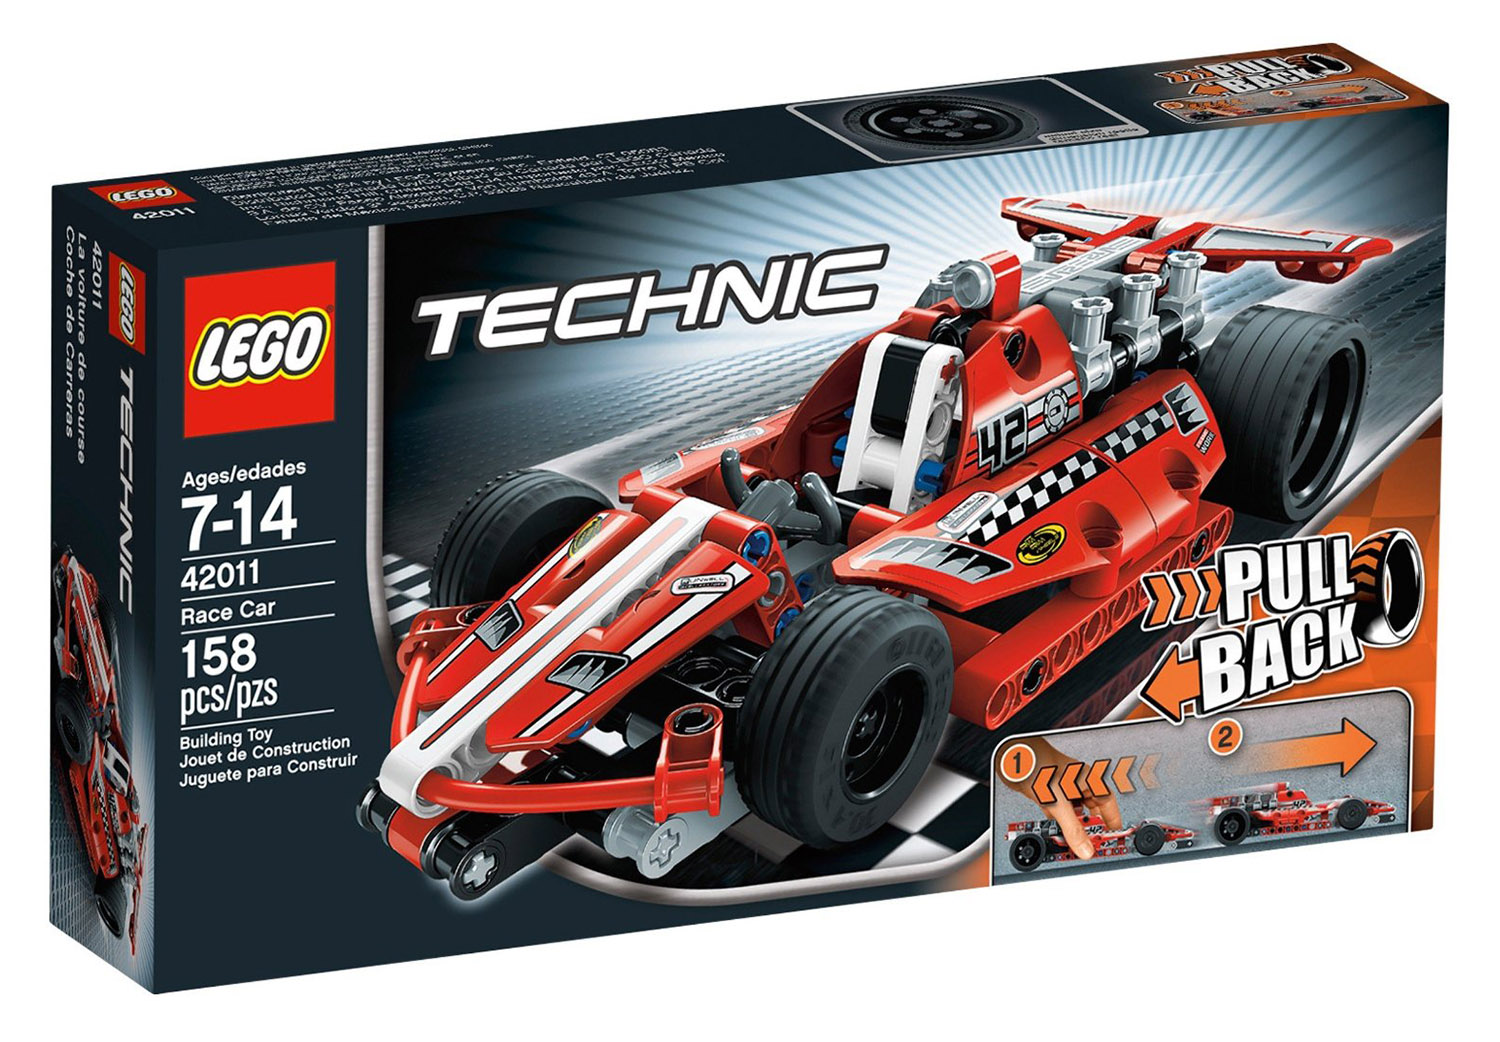 lego technic 42011 pas cher la voiture de course. Black Bedroom Furniture Sets. Home Design Ideas